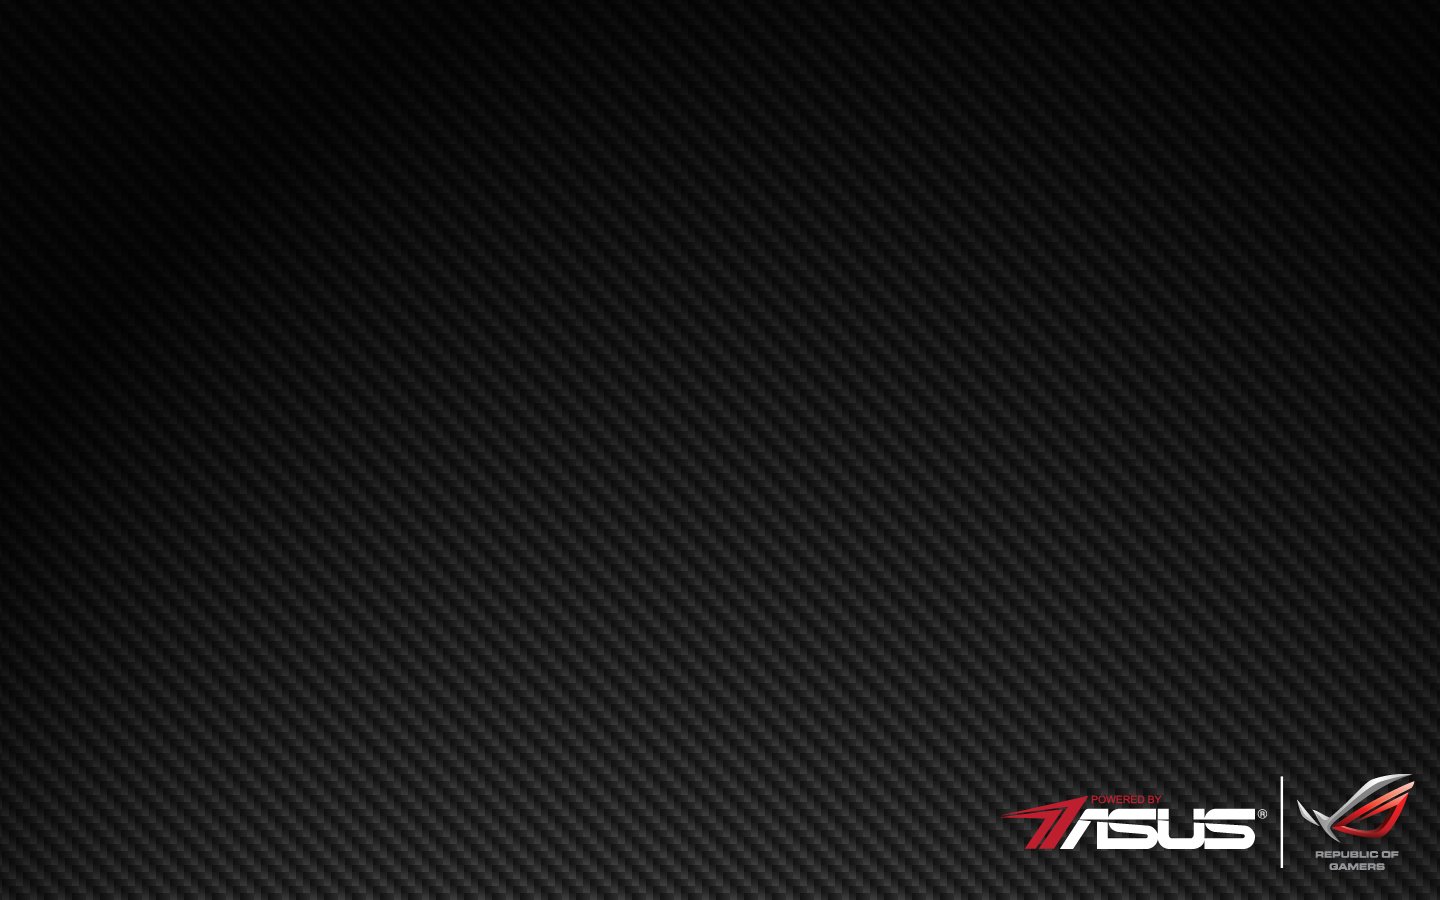 ASUS ROG Staff Will Also Be Internally Discussing And Awarding One Of The Entries As Well We Announce Winners A Week Today On 7th February